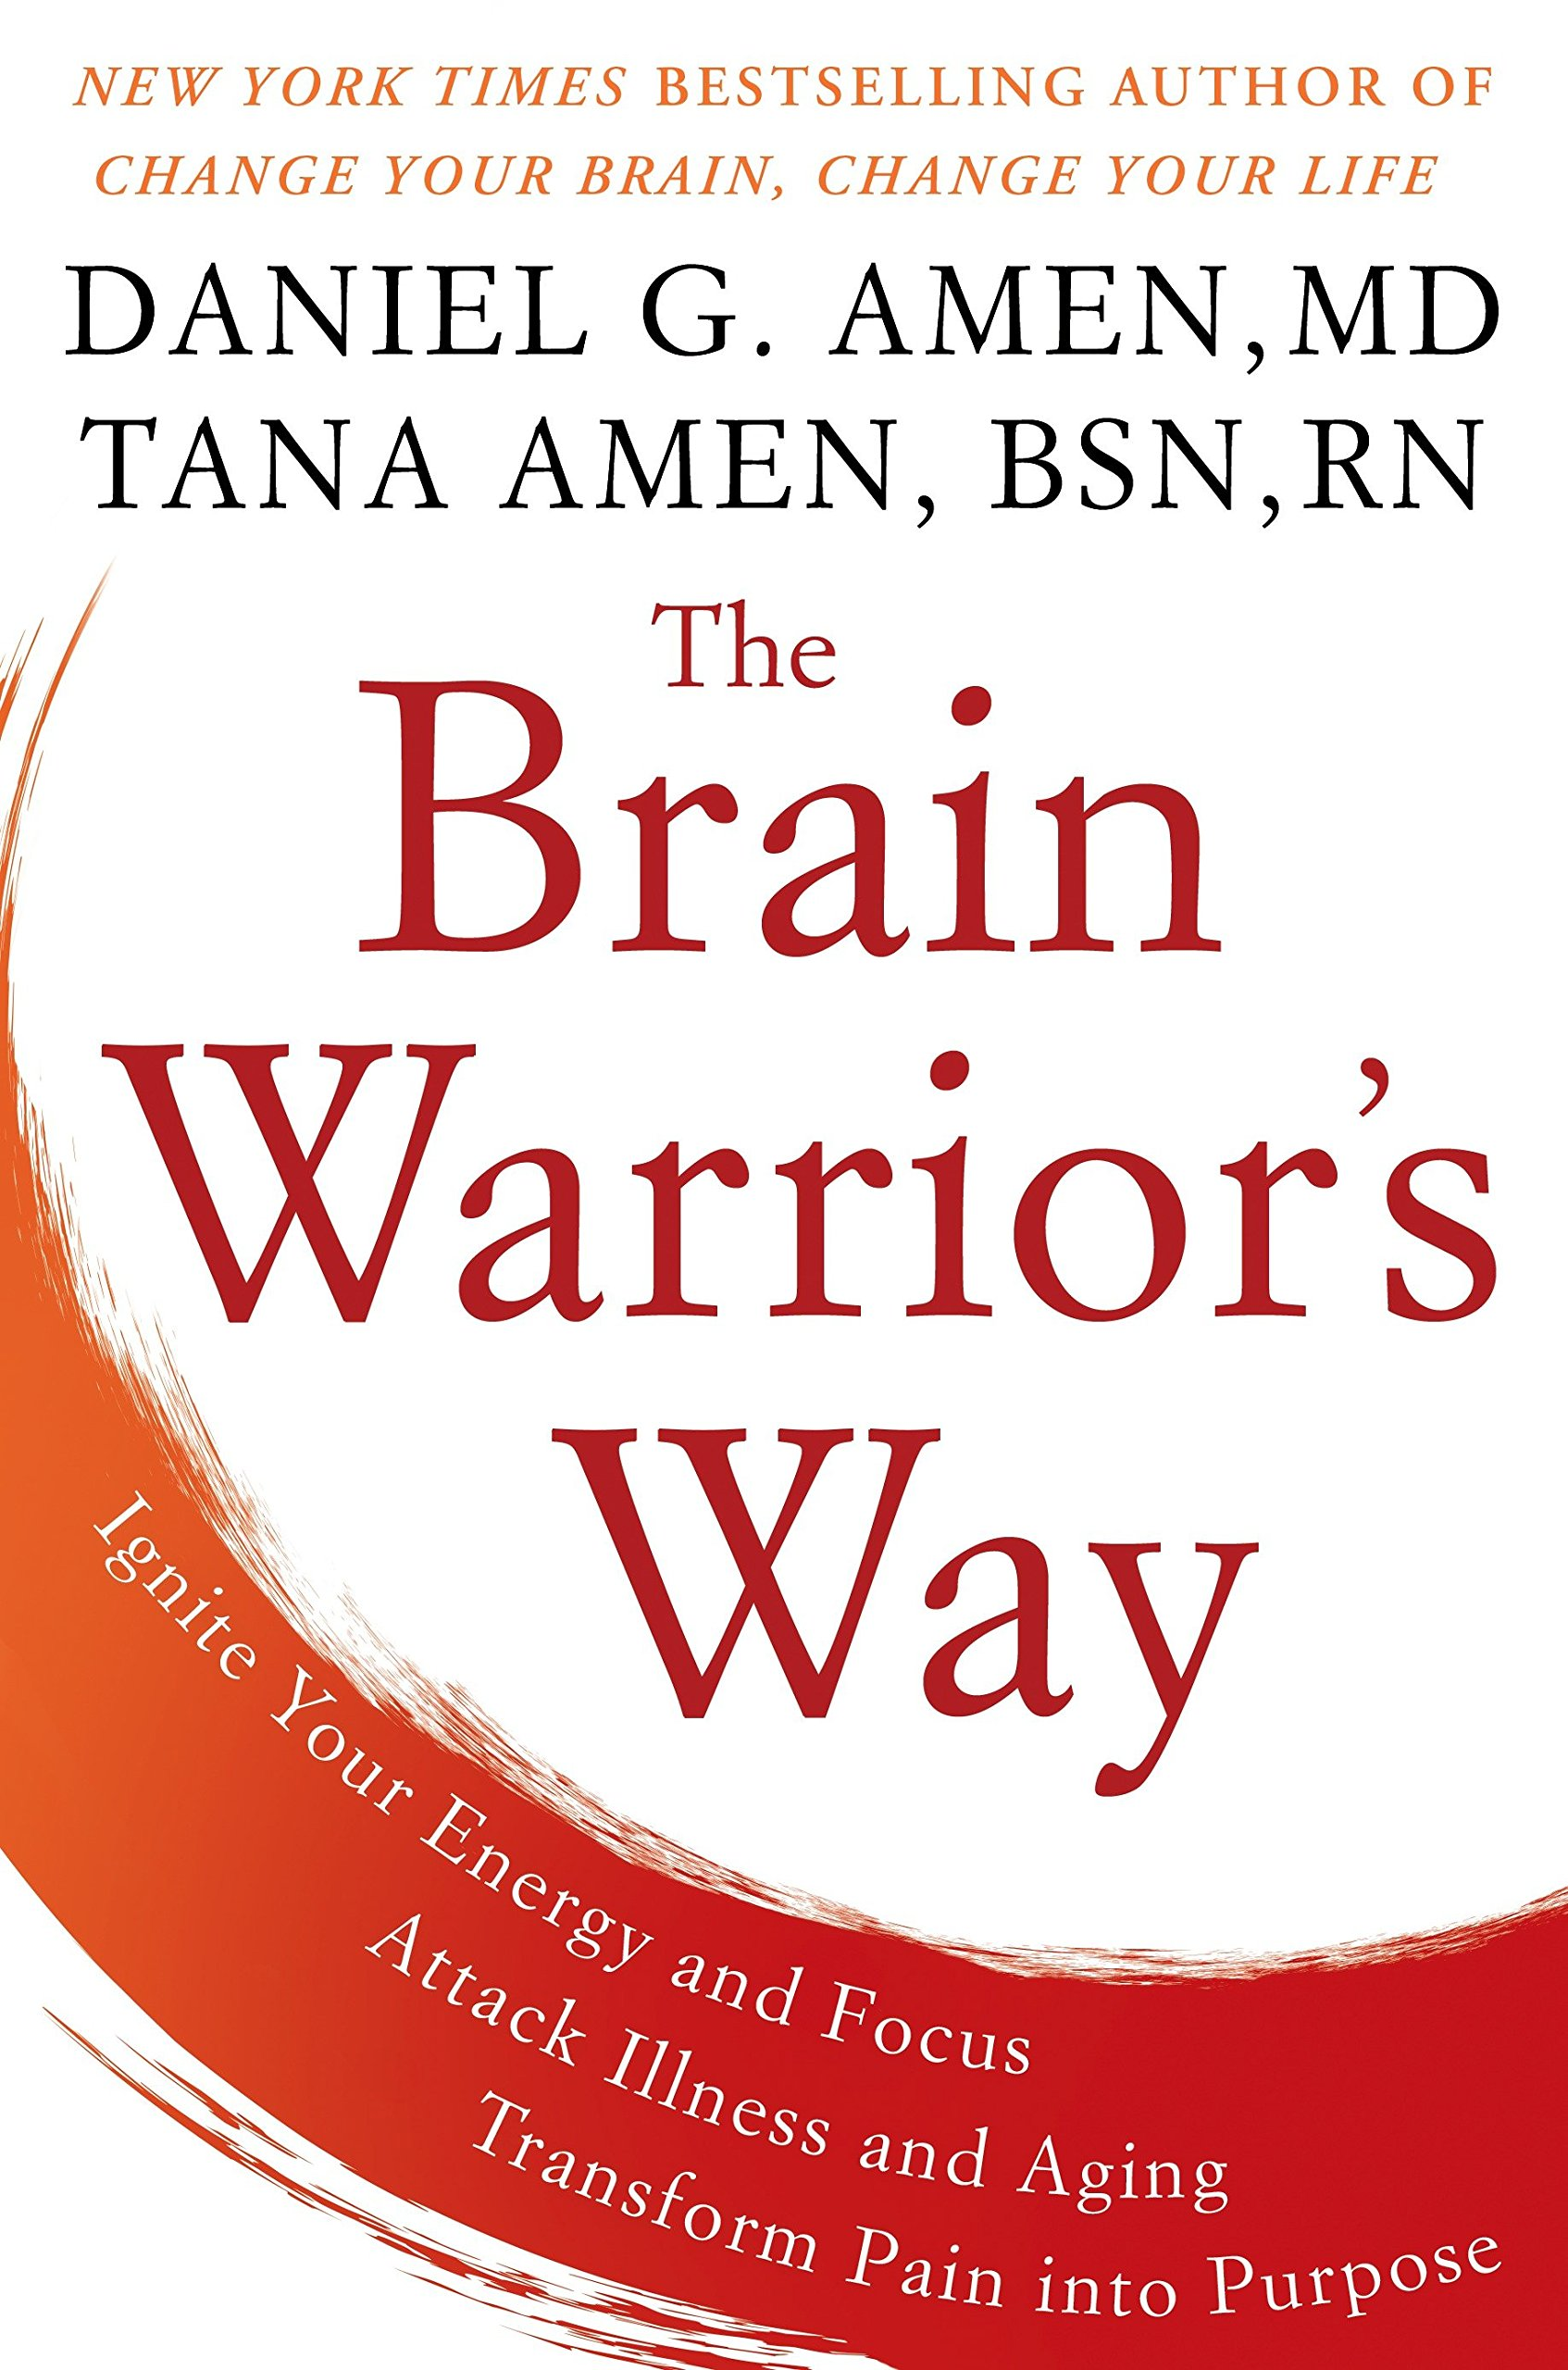 The Brain Warriors Way Ignite Your Energy And Focus Attack Since Electricity Is Not Something We Can Physically See Ignition Illness Aging Transform Pain Into Purpose Daniel G Amen Md Tana Bsn Rn